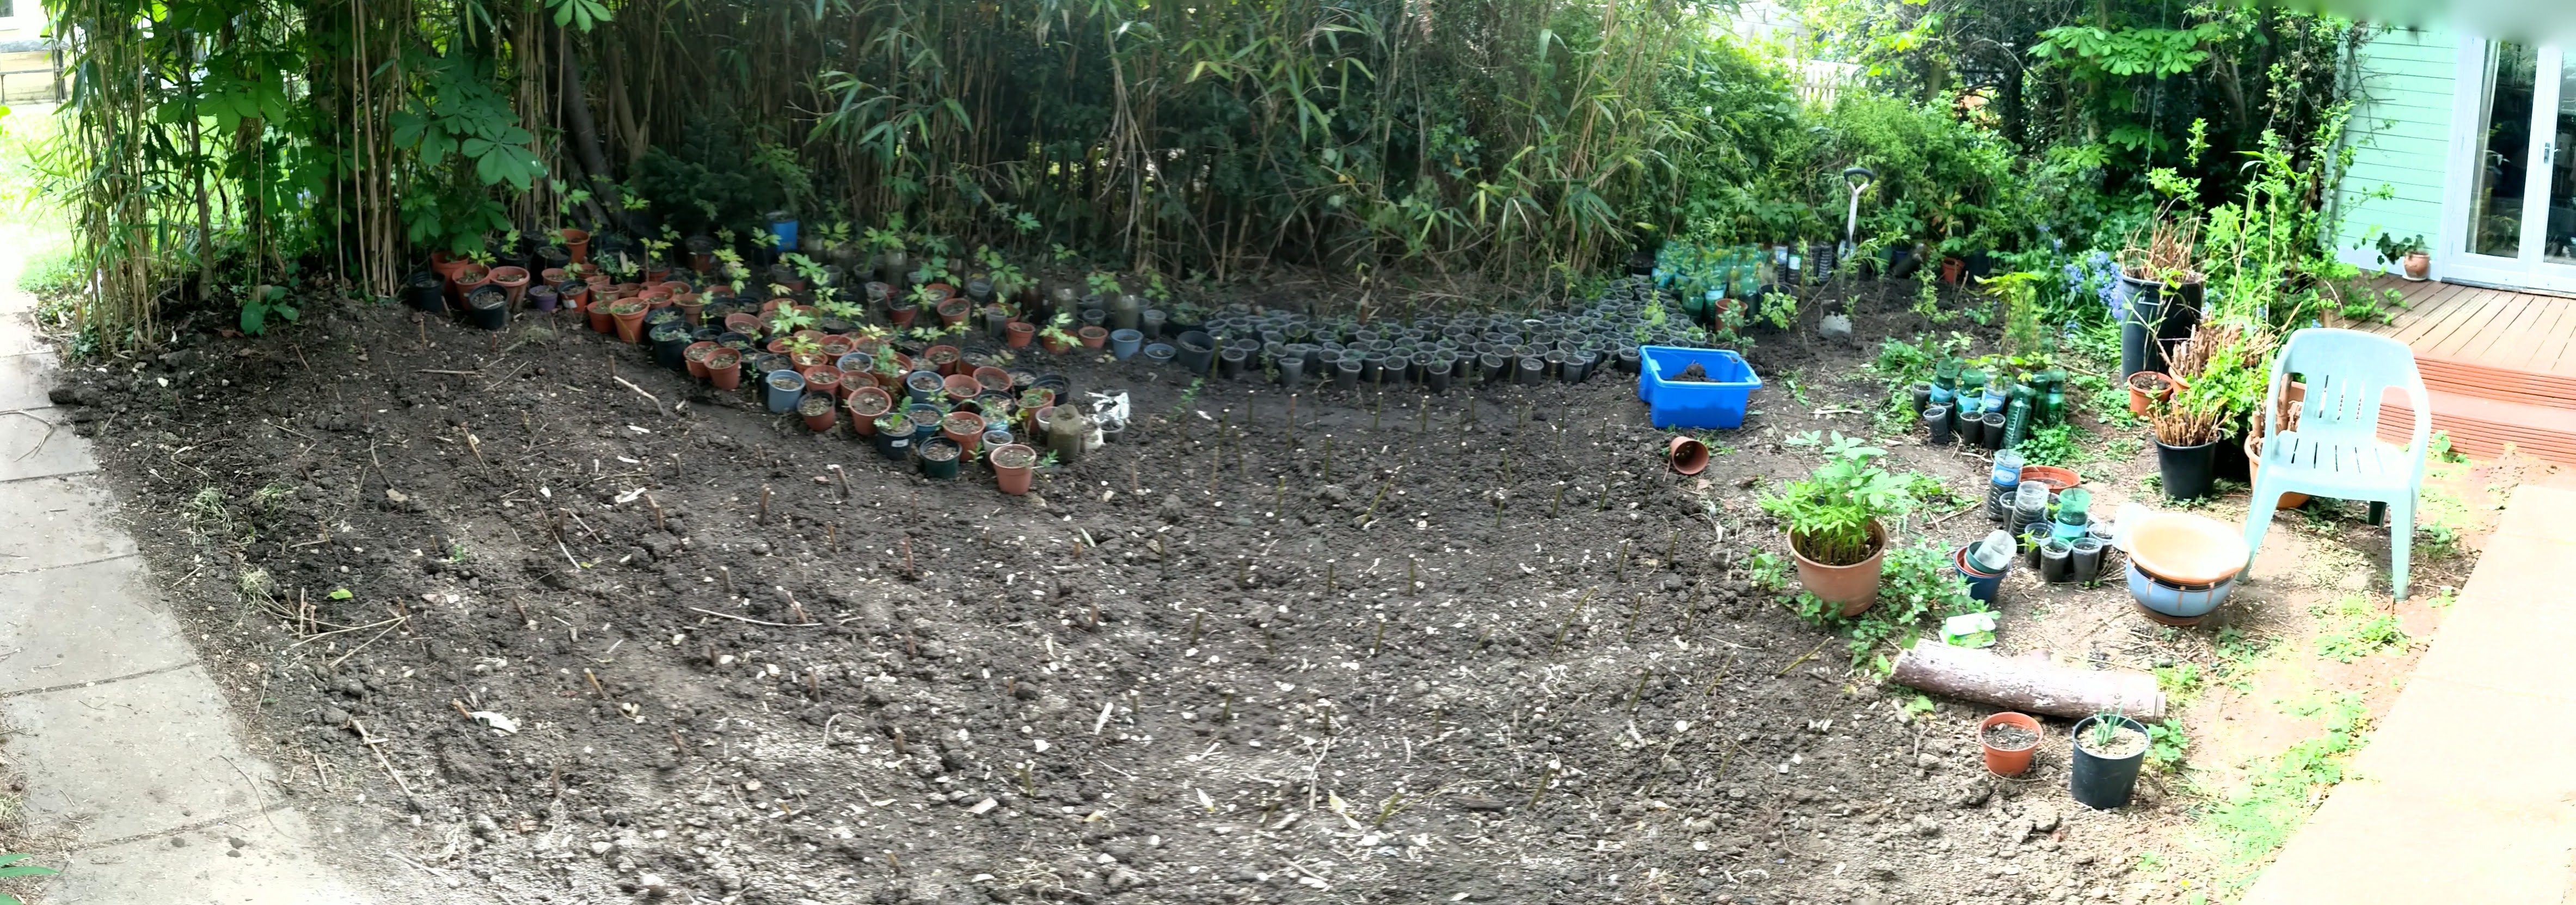 panoramic view of 8m by 4m plot, the bottom path is straight